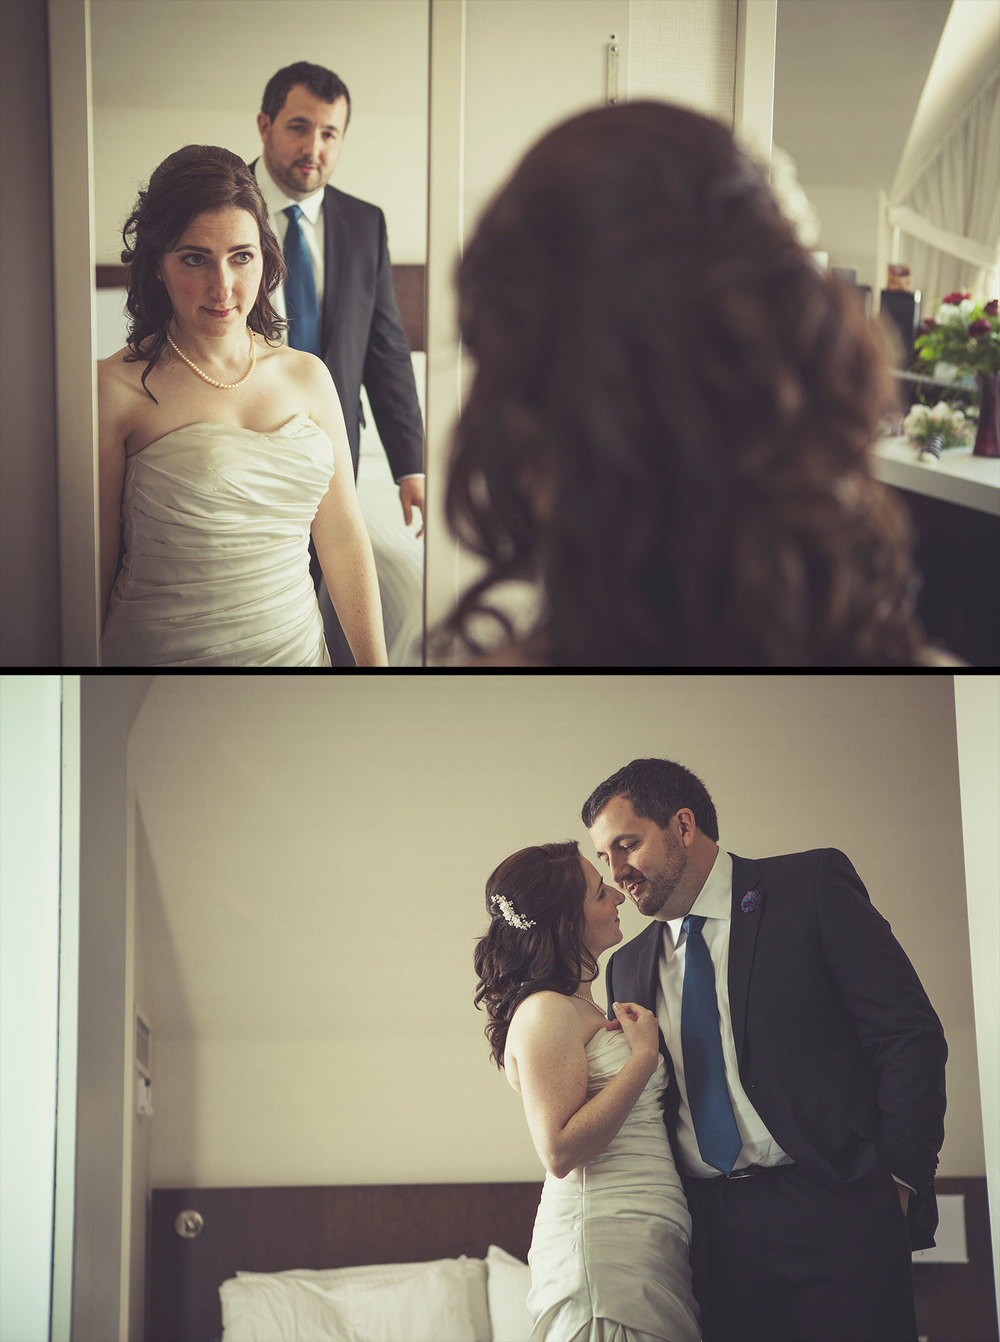 wedding-photographer-toronto-canada-shayne-gray_8014.jpg